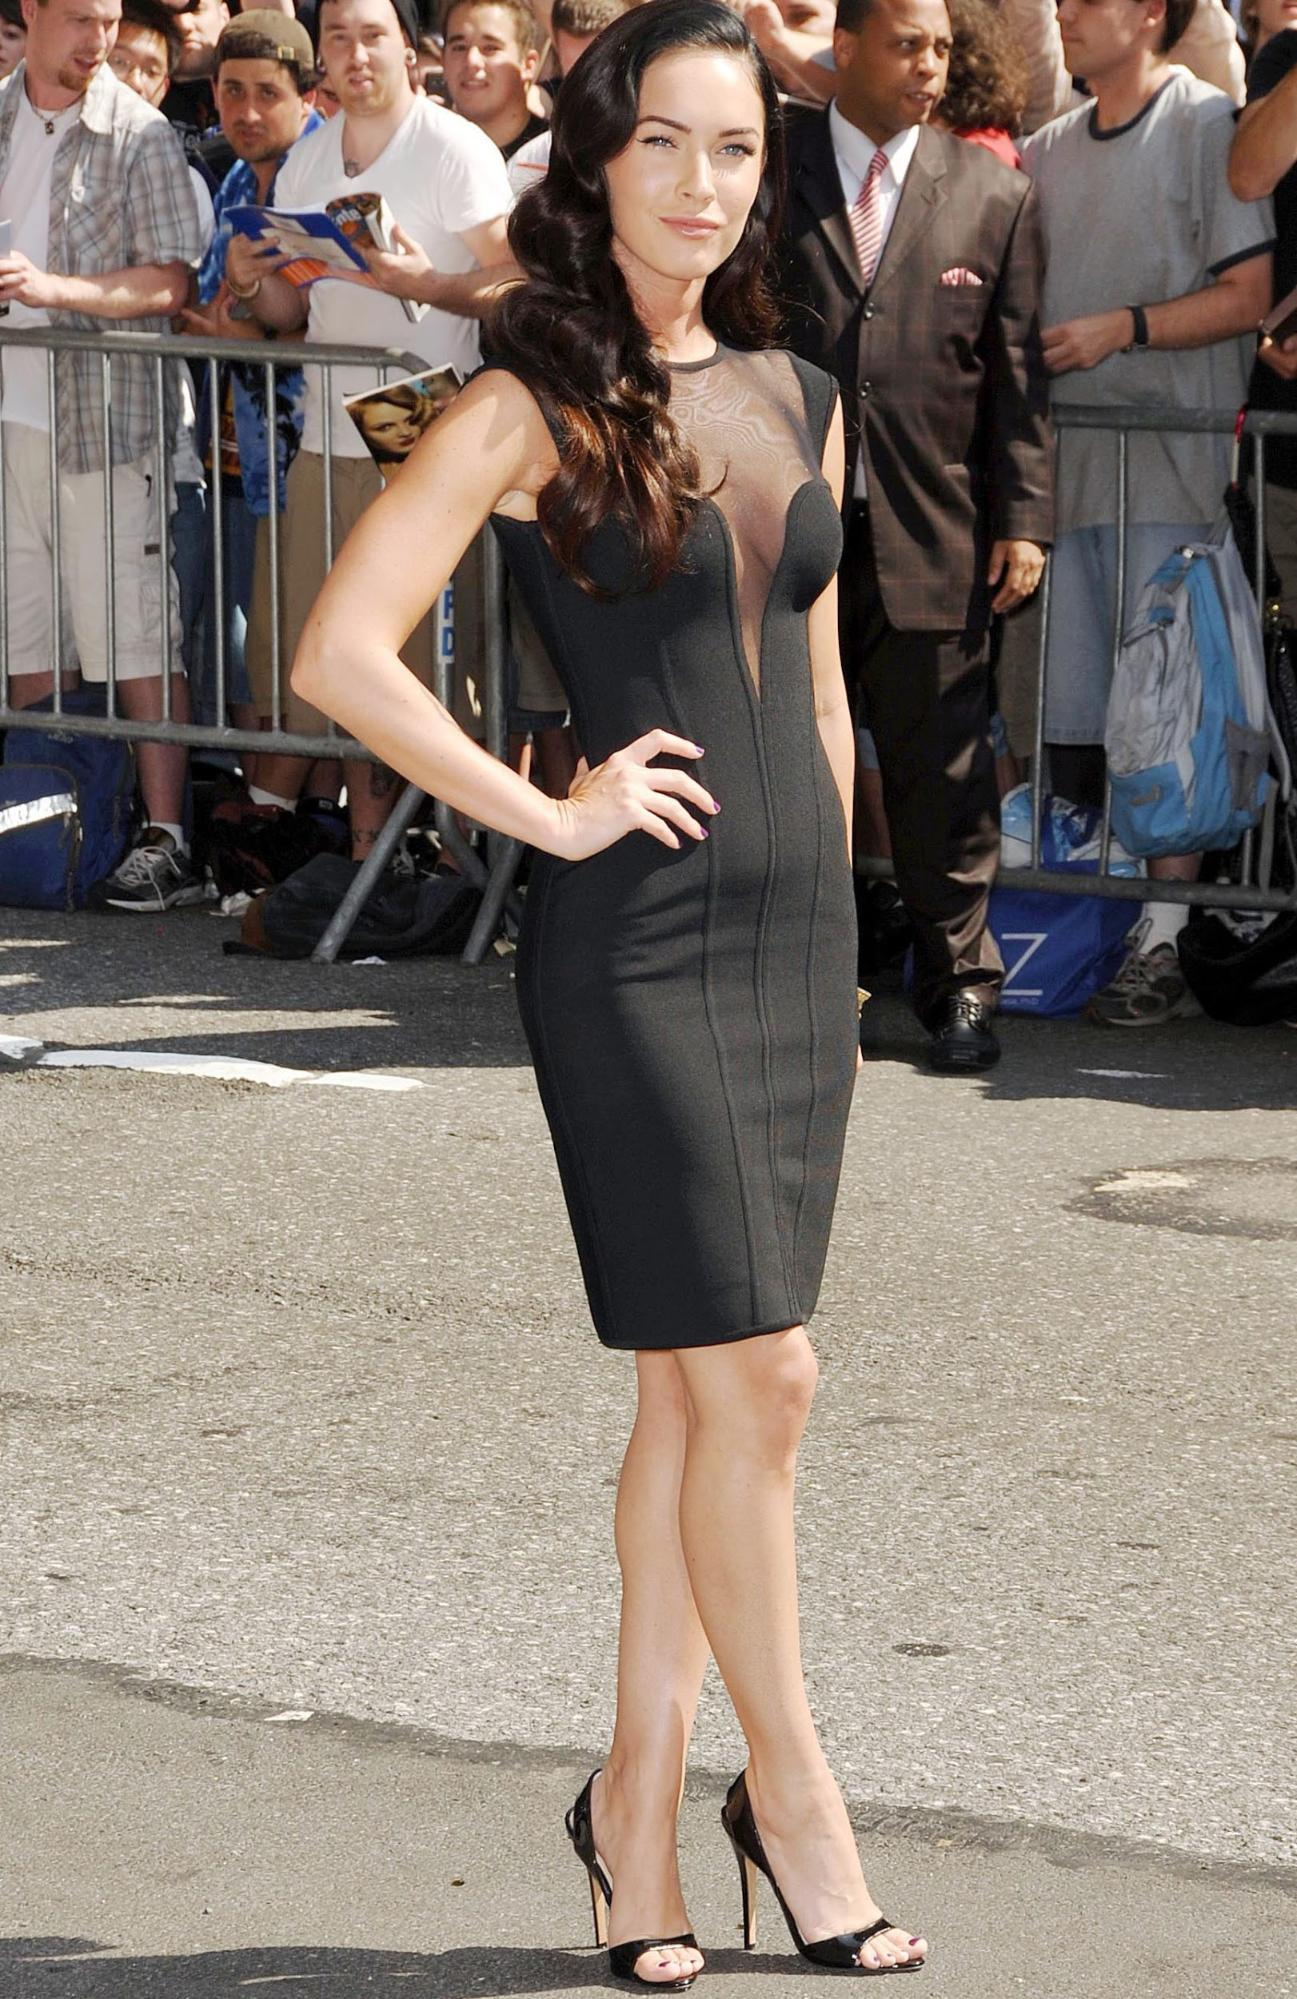 Megan Fox wears a flattering black bodycon dress to The Late Show with David Letterman. Credit: Rex Features